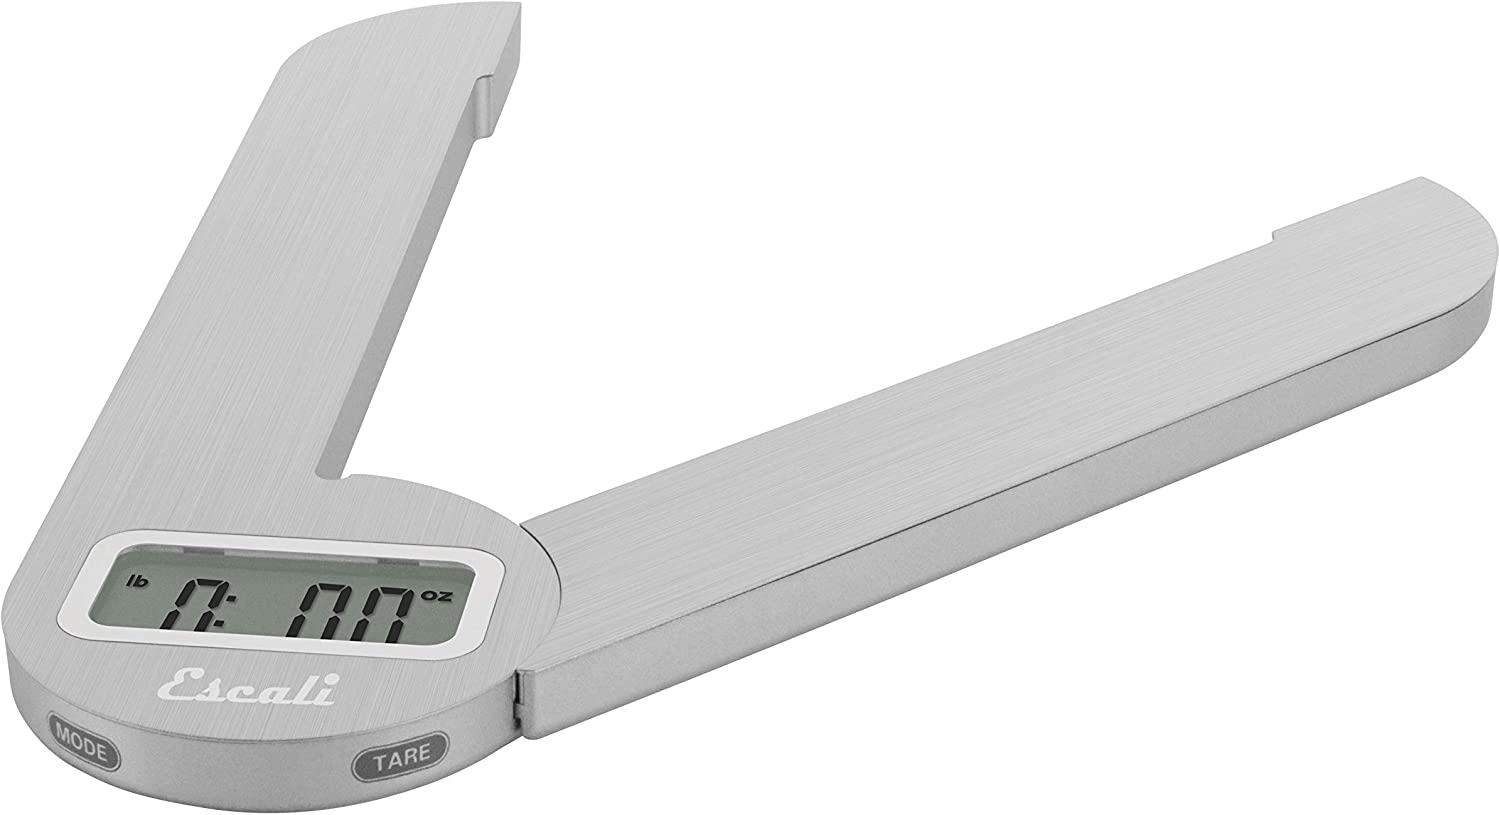 Escali Savu F115 Space Saving Folding Compact Kitchen Scale, Tare Functionality, 11lb Capacity, Stainless Steel